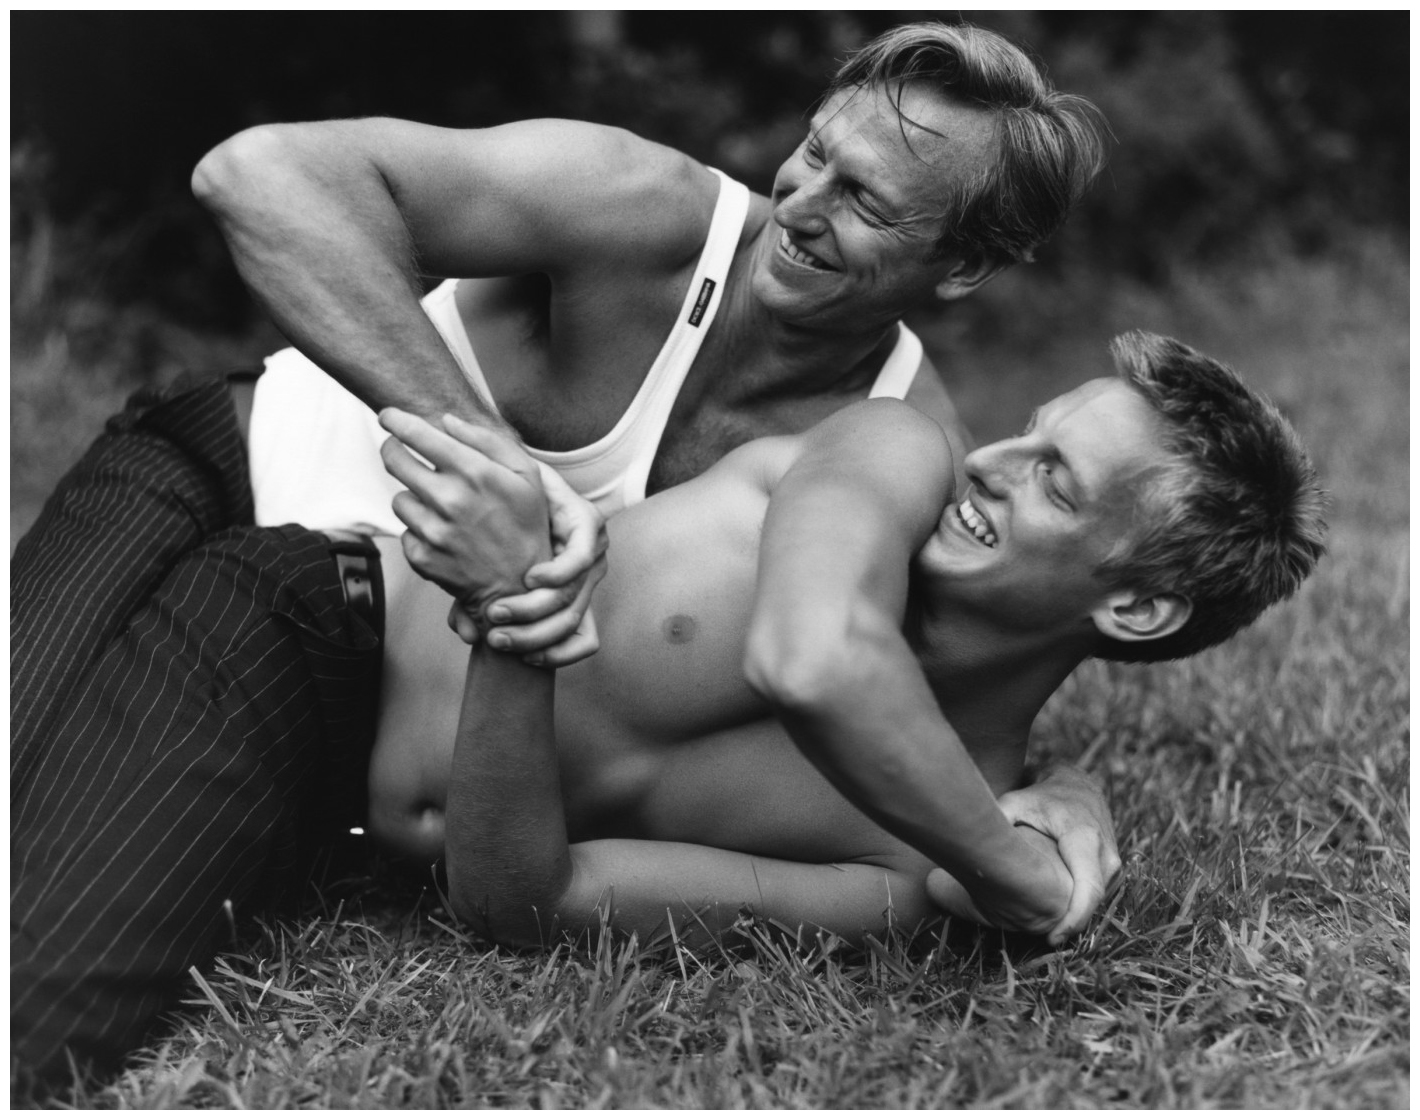 photo-bruce-weber-homotography-17